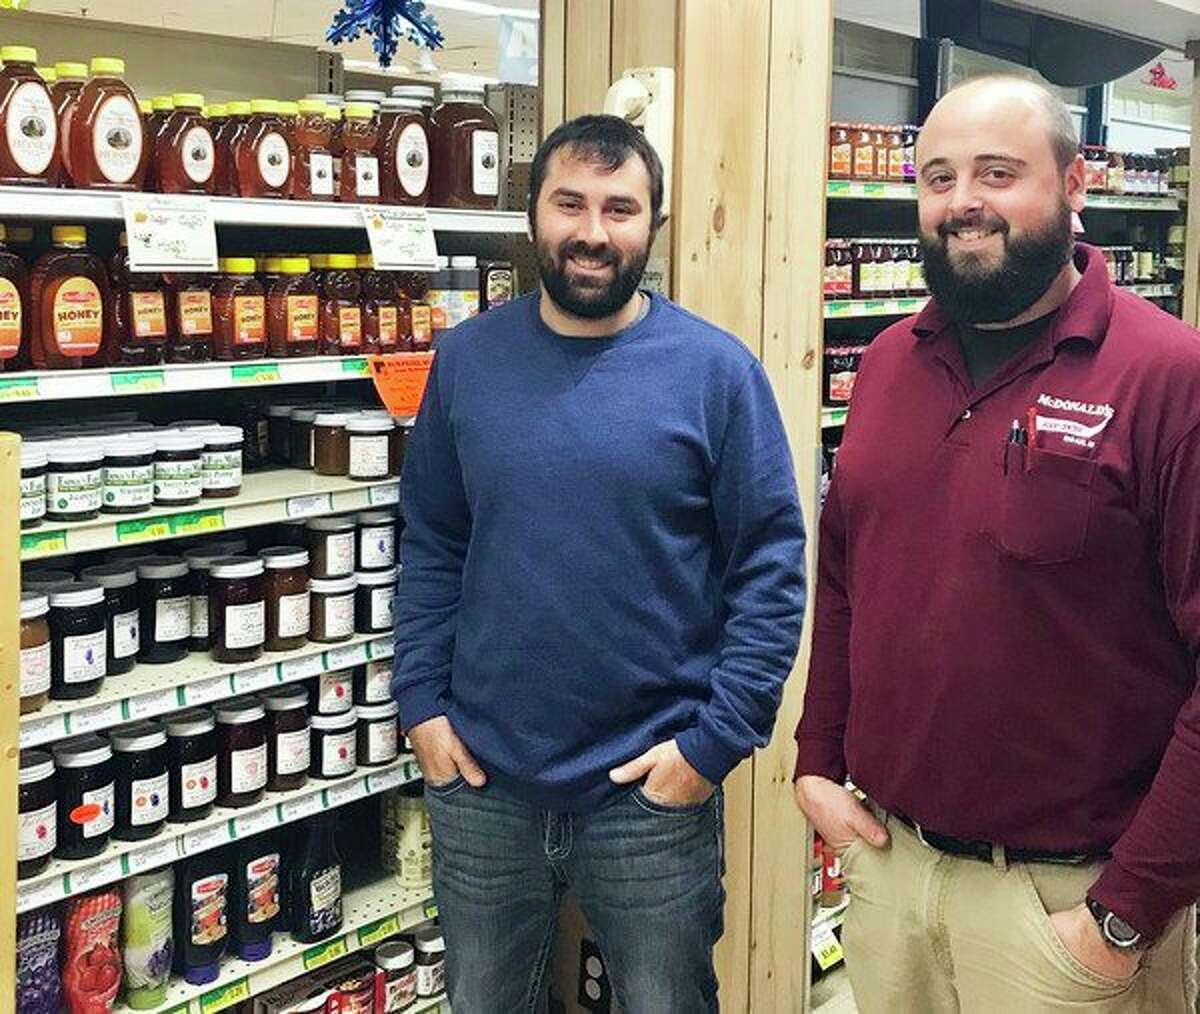 FILE - Brett McCoy (left) and McDonald's Food and Family Center employee Ryan Tenbusch, stand next to a brand new display of McCoy Honey, sitting on the top shelf at the store in 2019. (Courtesy Photo)